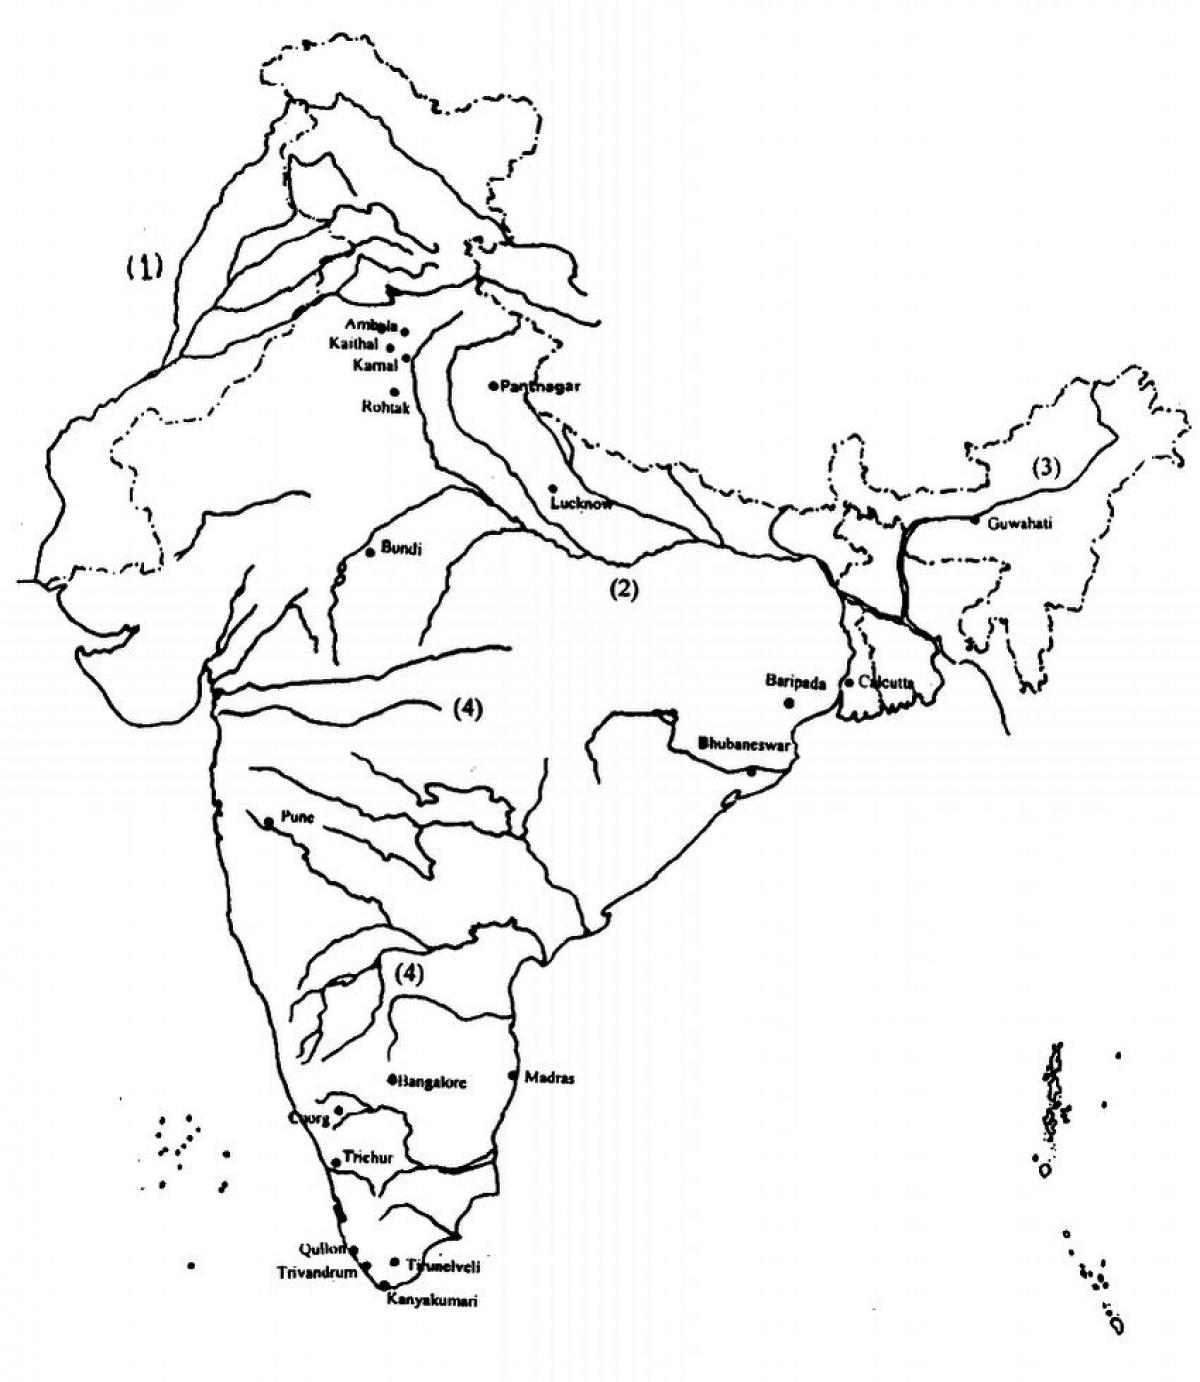 printable outline map of india outline map of india with rivers india outline map with india map of outline printable